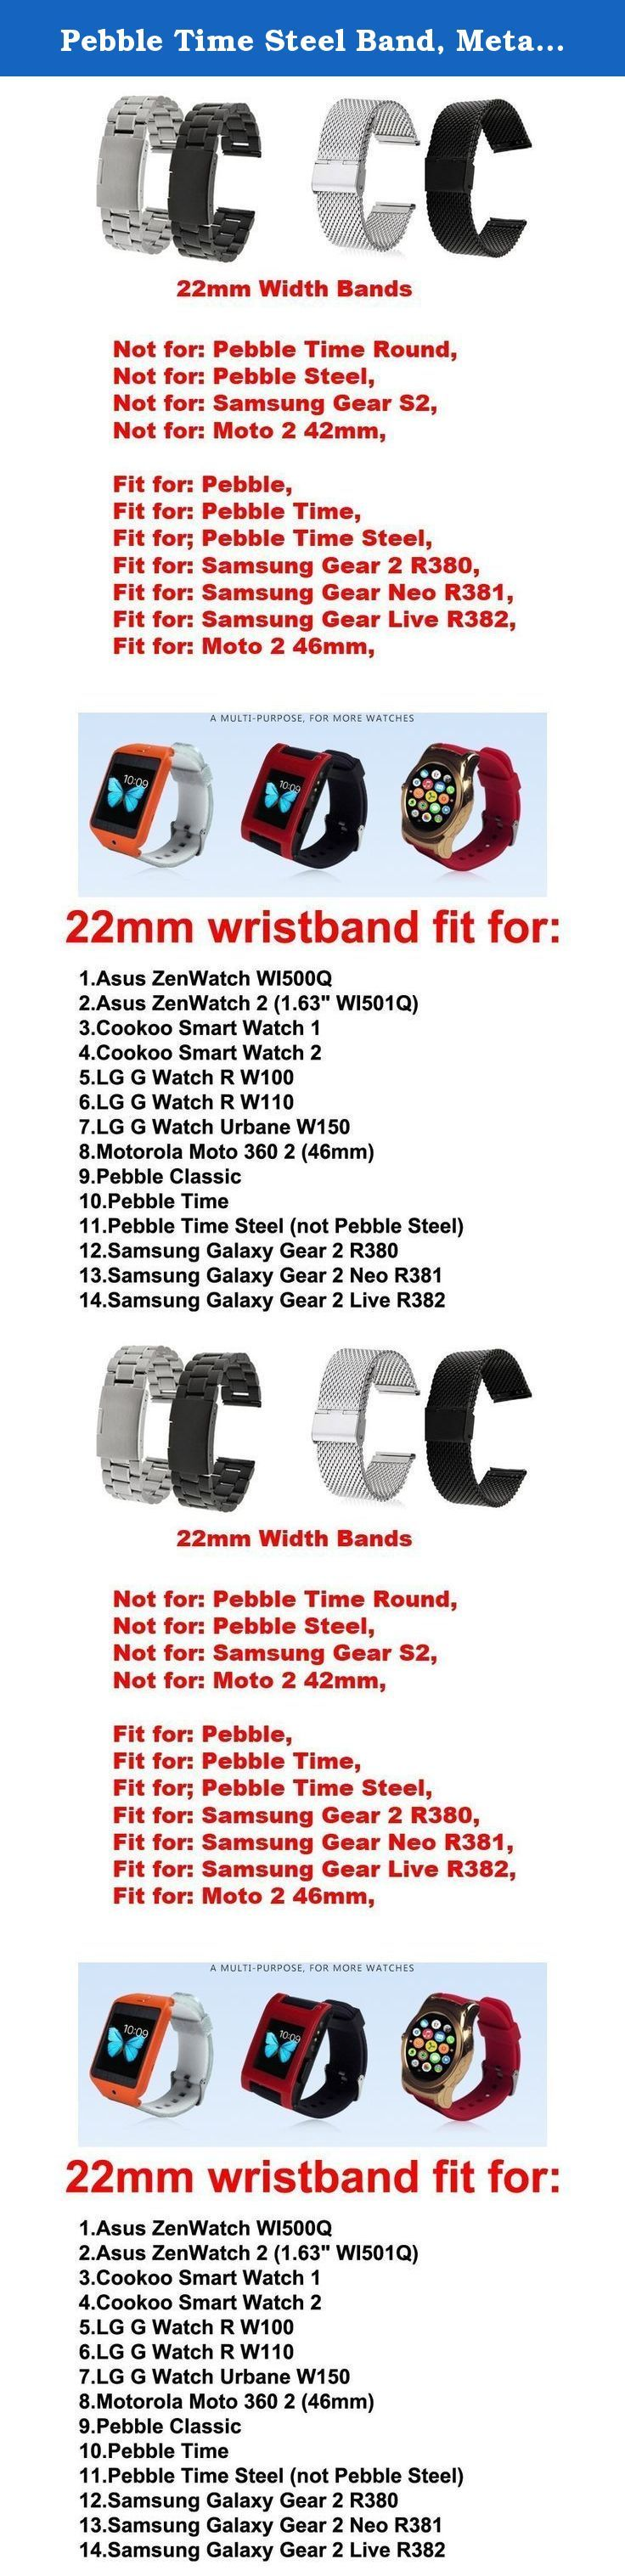 Pebble Time Steel Band, Metal, Replacement Stainless Steel Watch Strap for Pebble Time Steel (NOT Pebble Steel) Smart Watch /No Watch - 5zhuBlack. Metal Watchband/ Stainless Steel Strap fits for (Pebble Time Steel) Smart Watch, Please NOTE: Not Pebble Steel With Prefect workmanship, fashion design, comfortable feeling, stylish look, giving you noble wearing experience, easy to use, come with a set of tools Easy to install and remove; Width: 22mm; Length adjustable length; Best metal links...